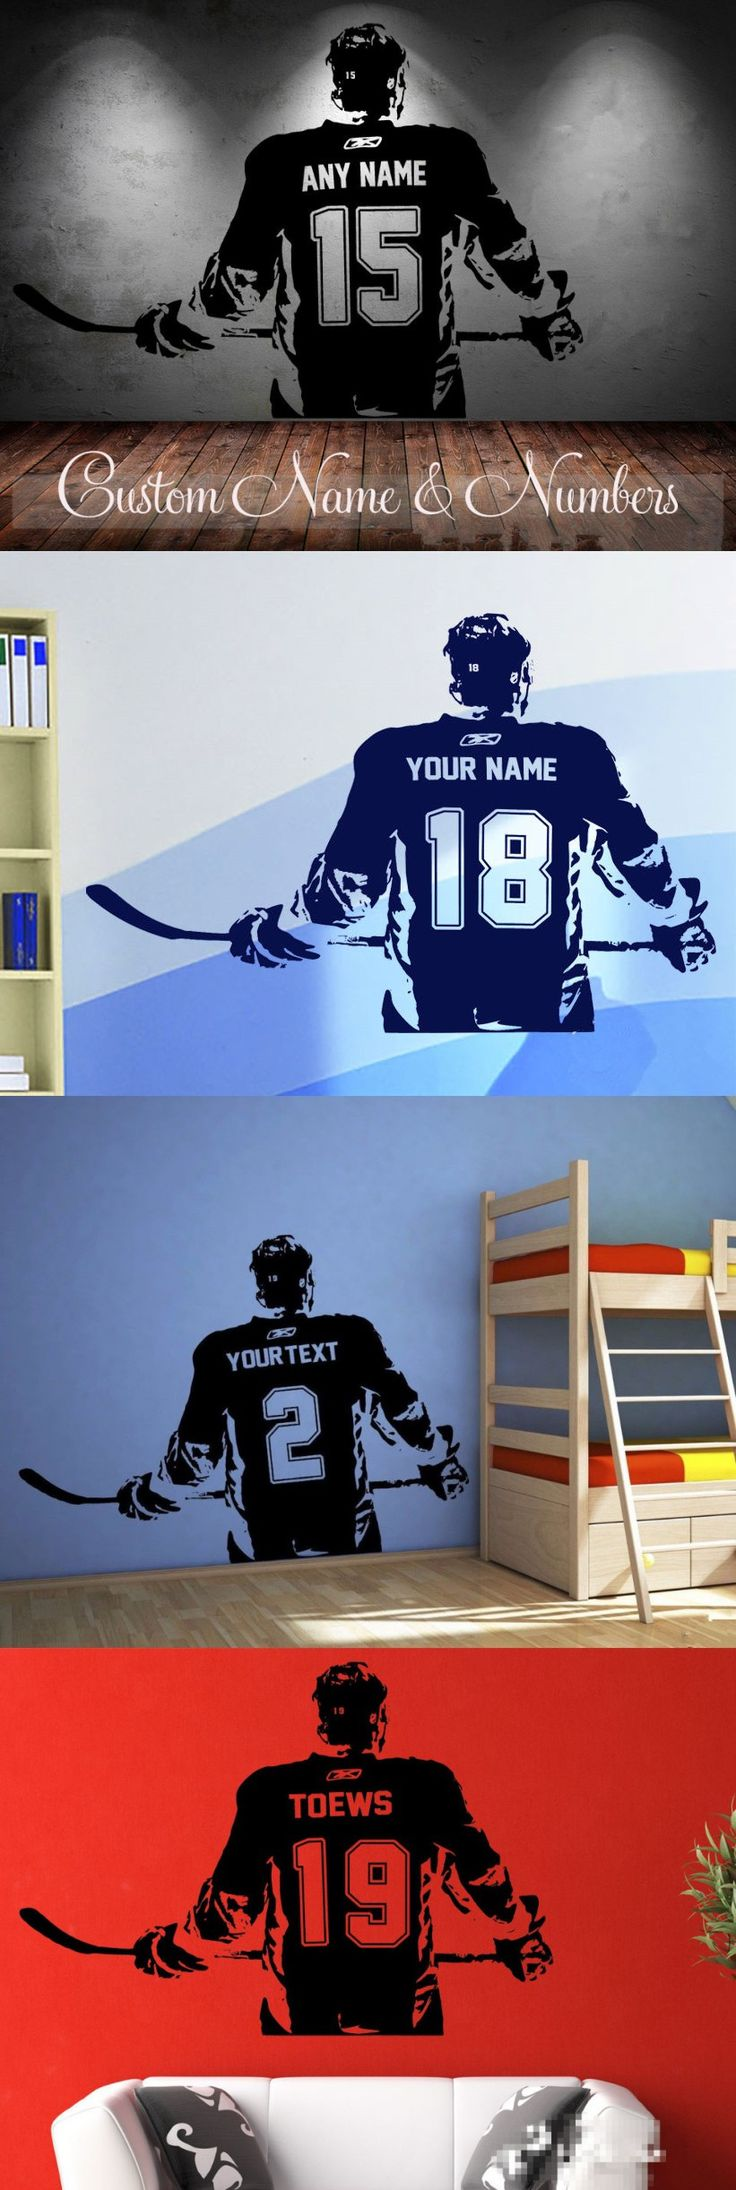 Hockey player Wall art Decal sticker Choose Name number personalized home decor Wall Stickers For Kids Room Vinilos Paredes D645 $11.55